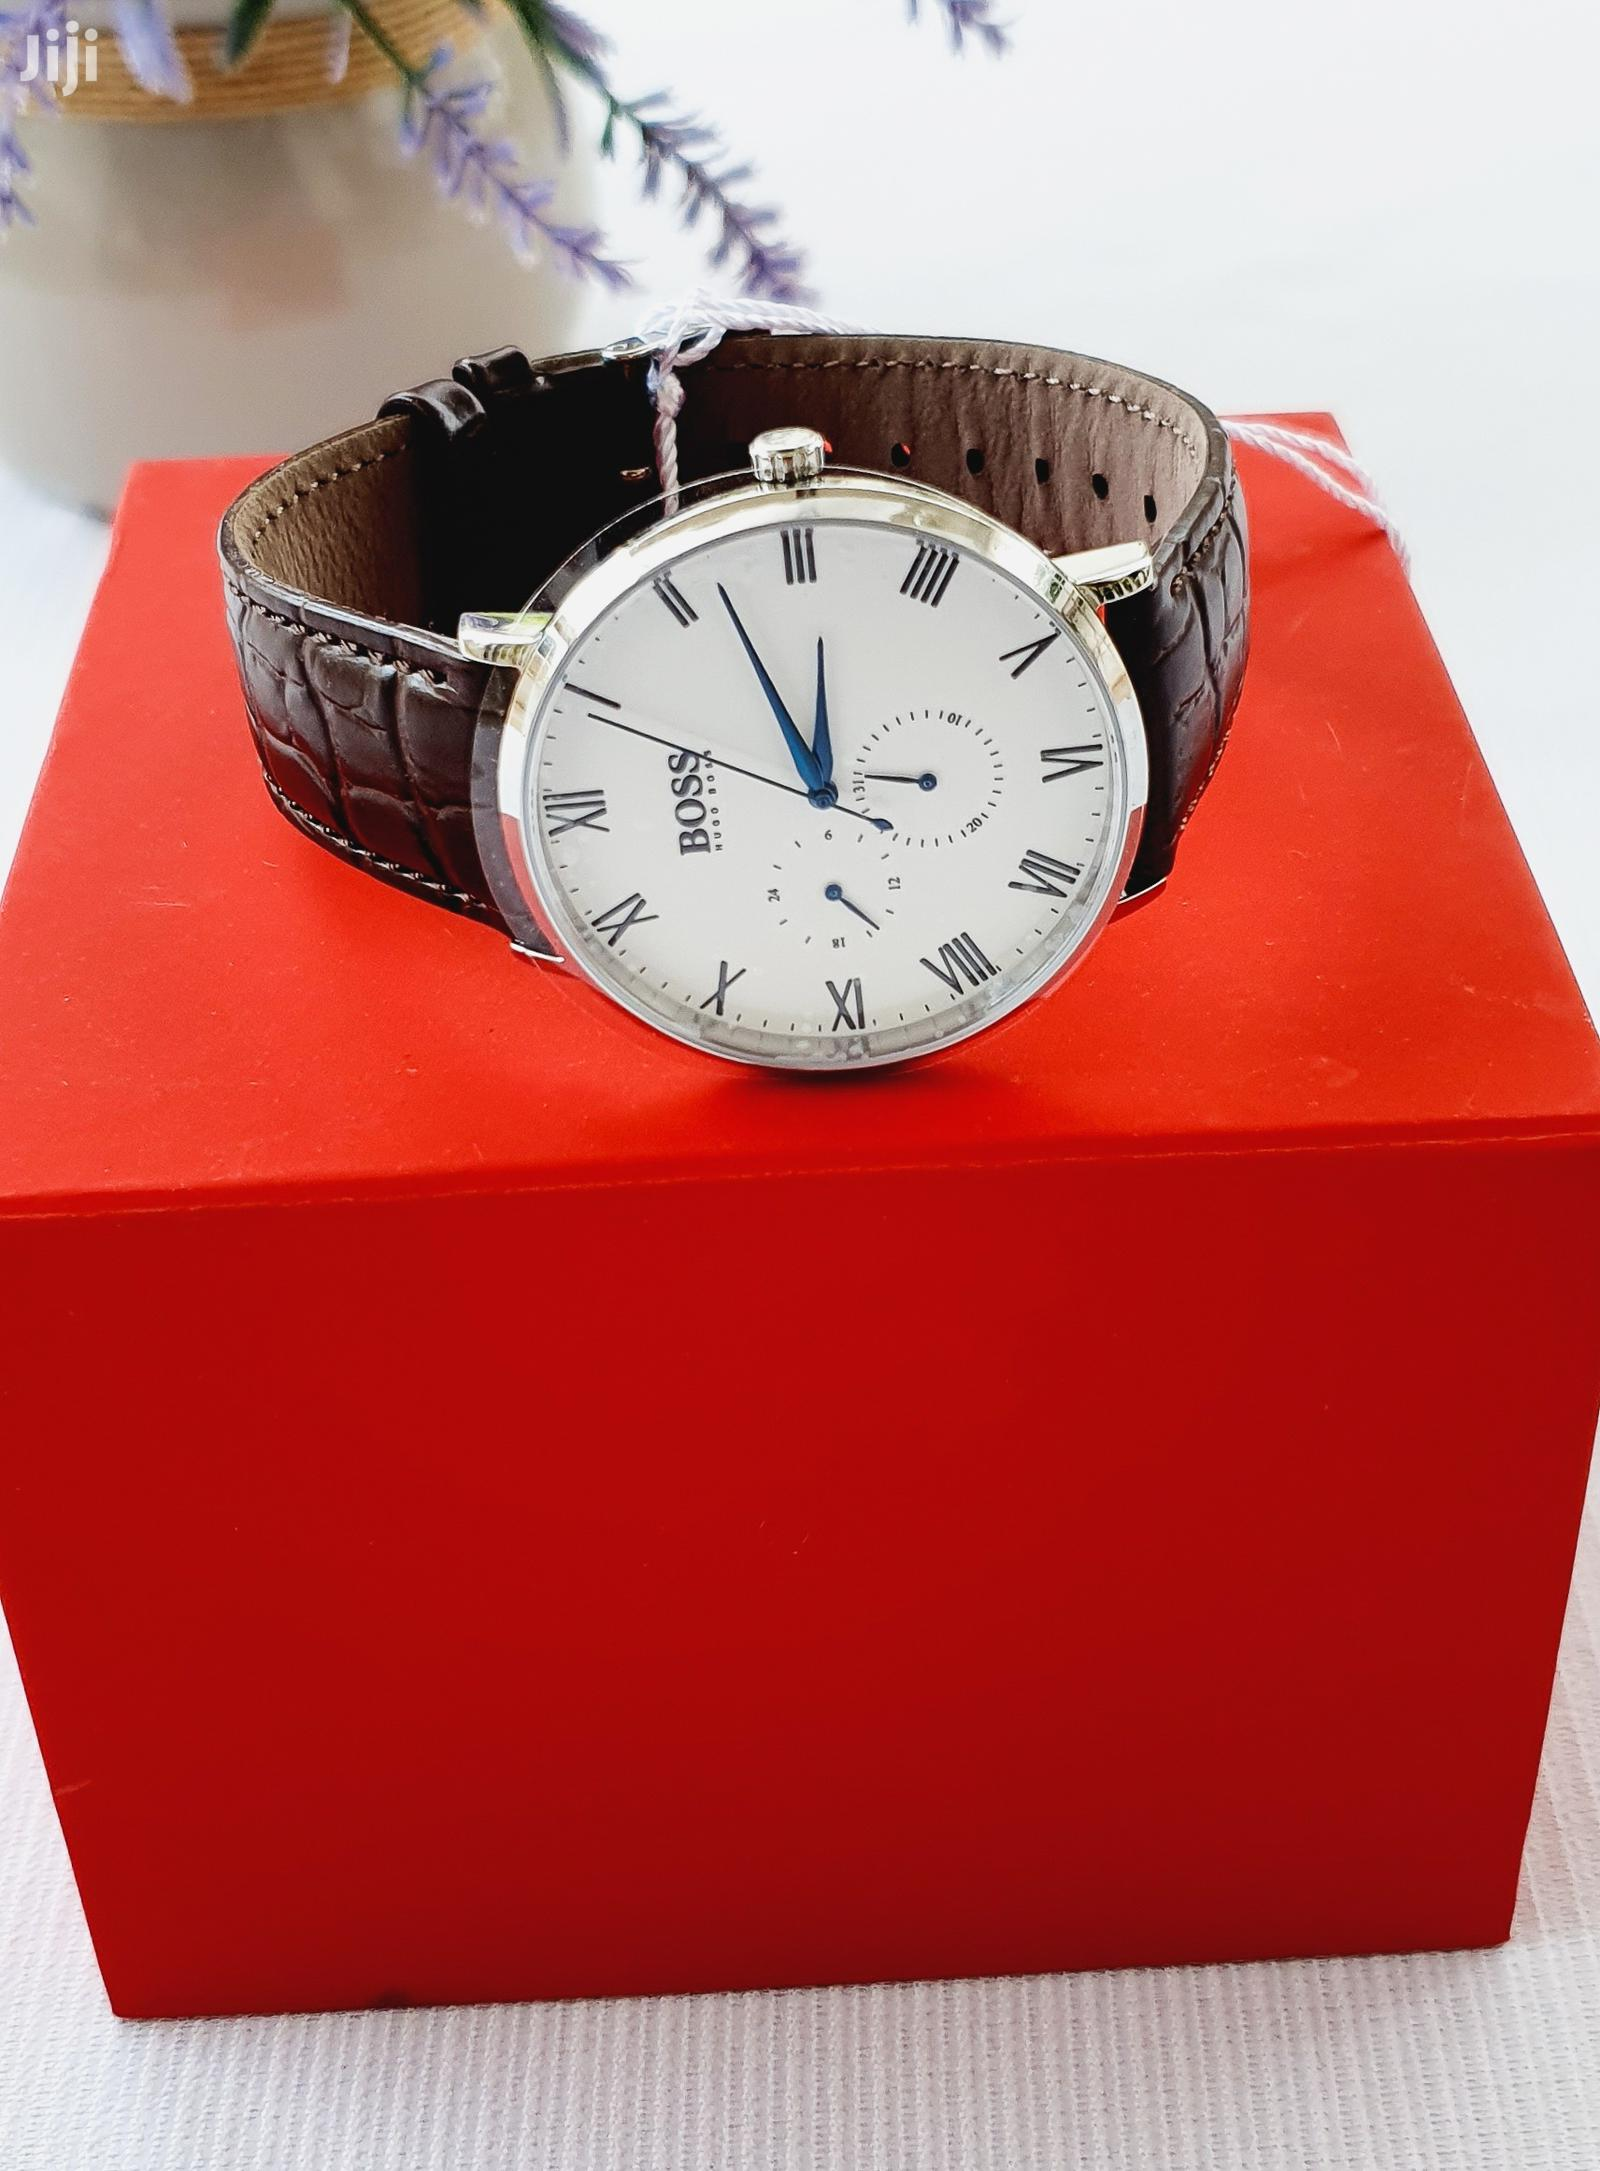 Hugo Boss Brown Leather Watch | Watches for sale in Accra Metropolitan, Greater Accra, Ghana